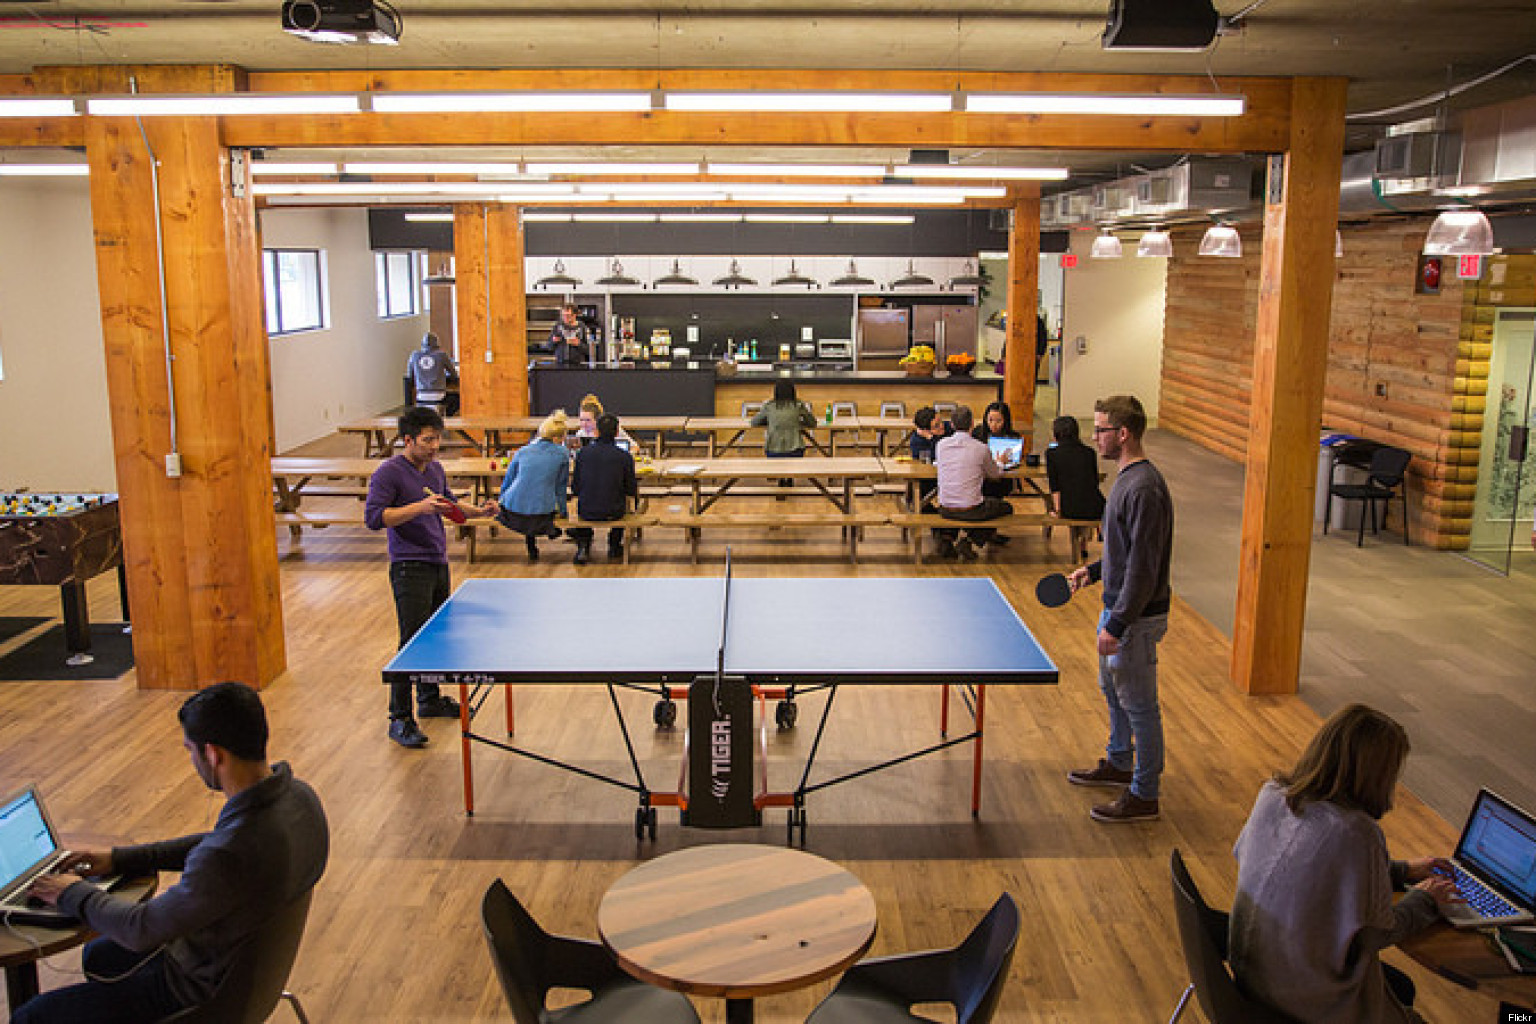 Hootsuite Vancouver Office Boasts Beer Nap Room Photos